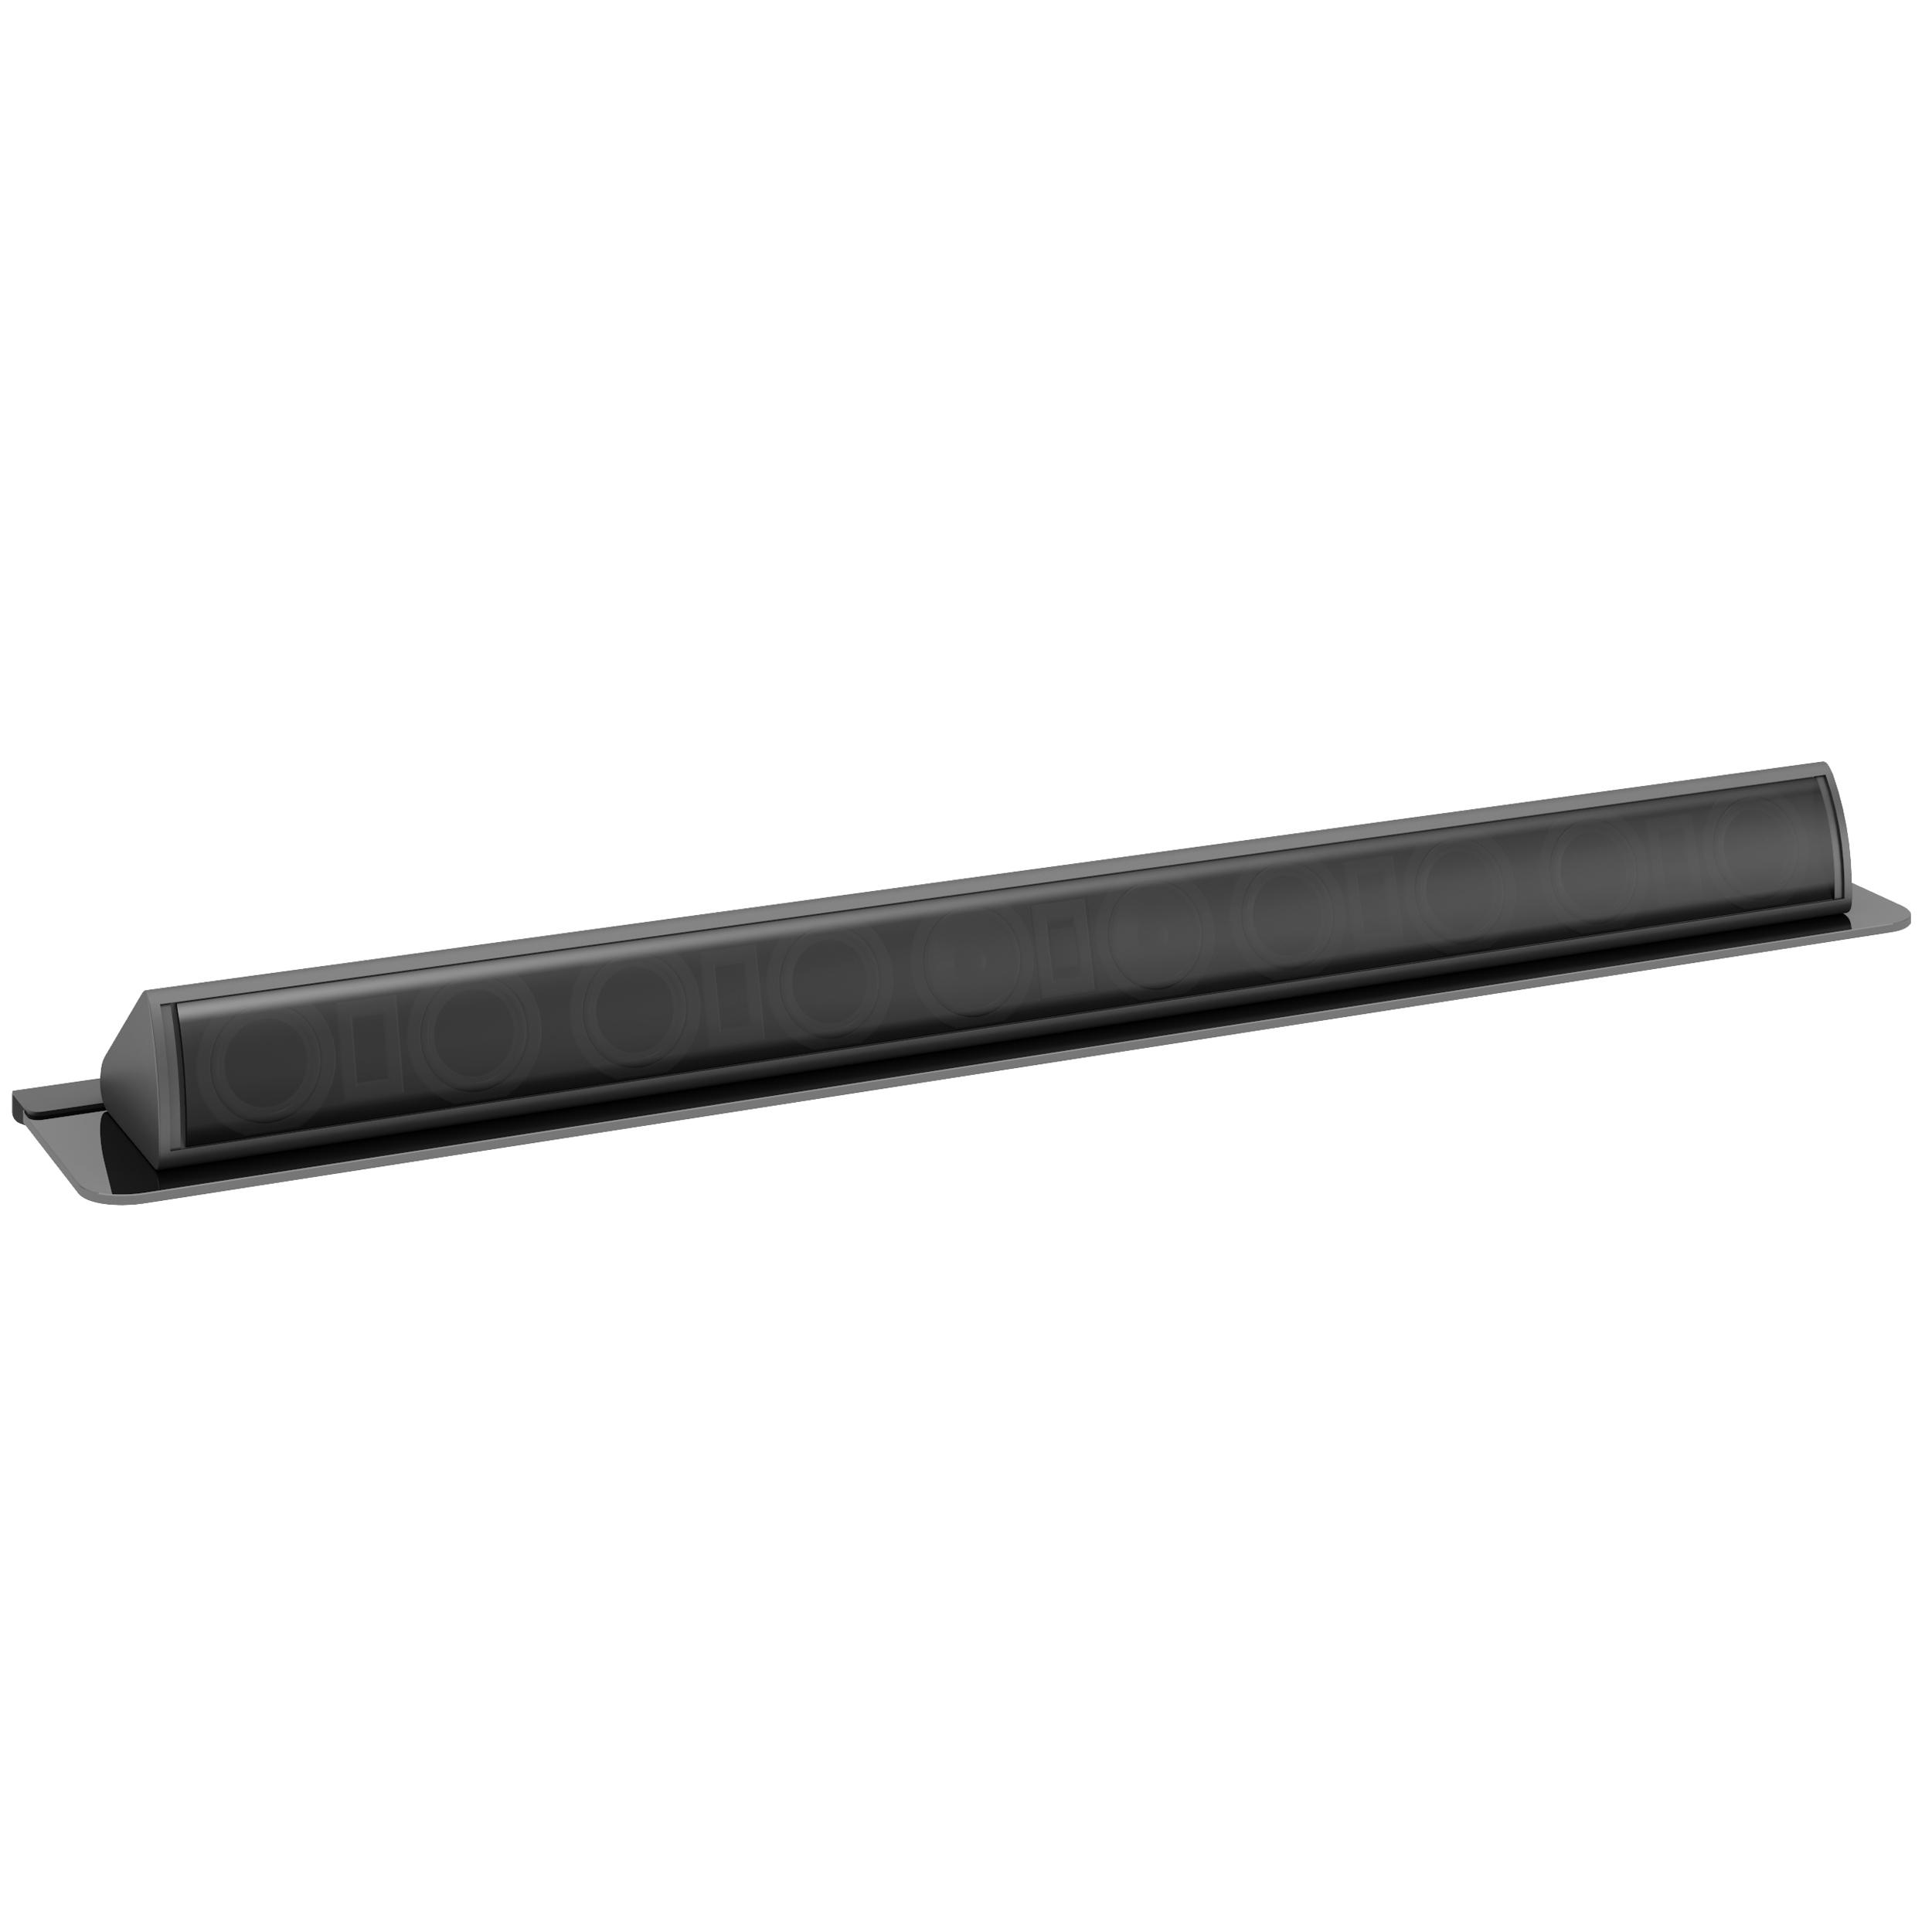 corliving mcs black tempered glass sound bar wall floating shelf for soundbar beautiful garage utility storage cabinets kitchen without upper tures media stand industrial metal